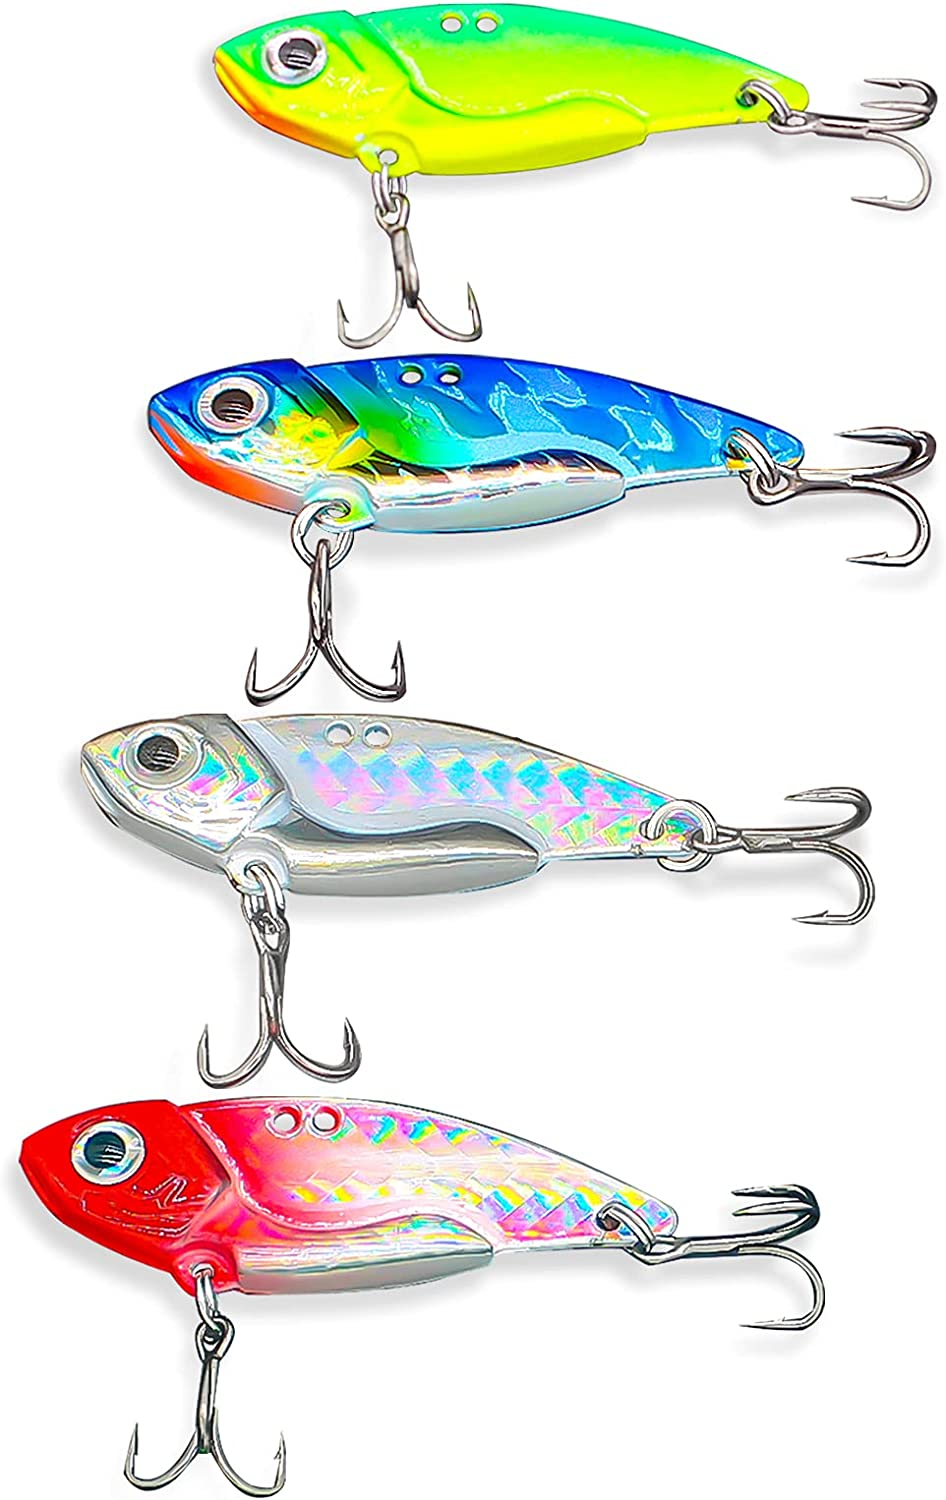 Lilureena 4pcs Spinner Spoon Swimbait with H Lures Max 55% OFF Fishing Import Baits